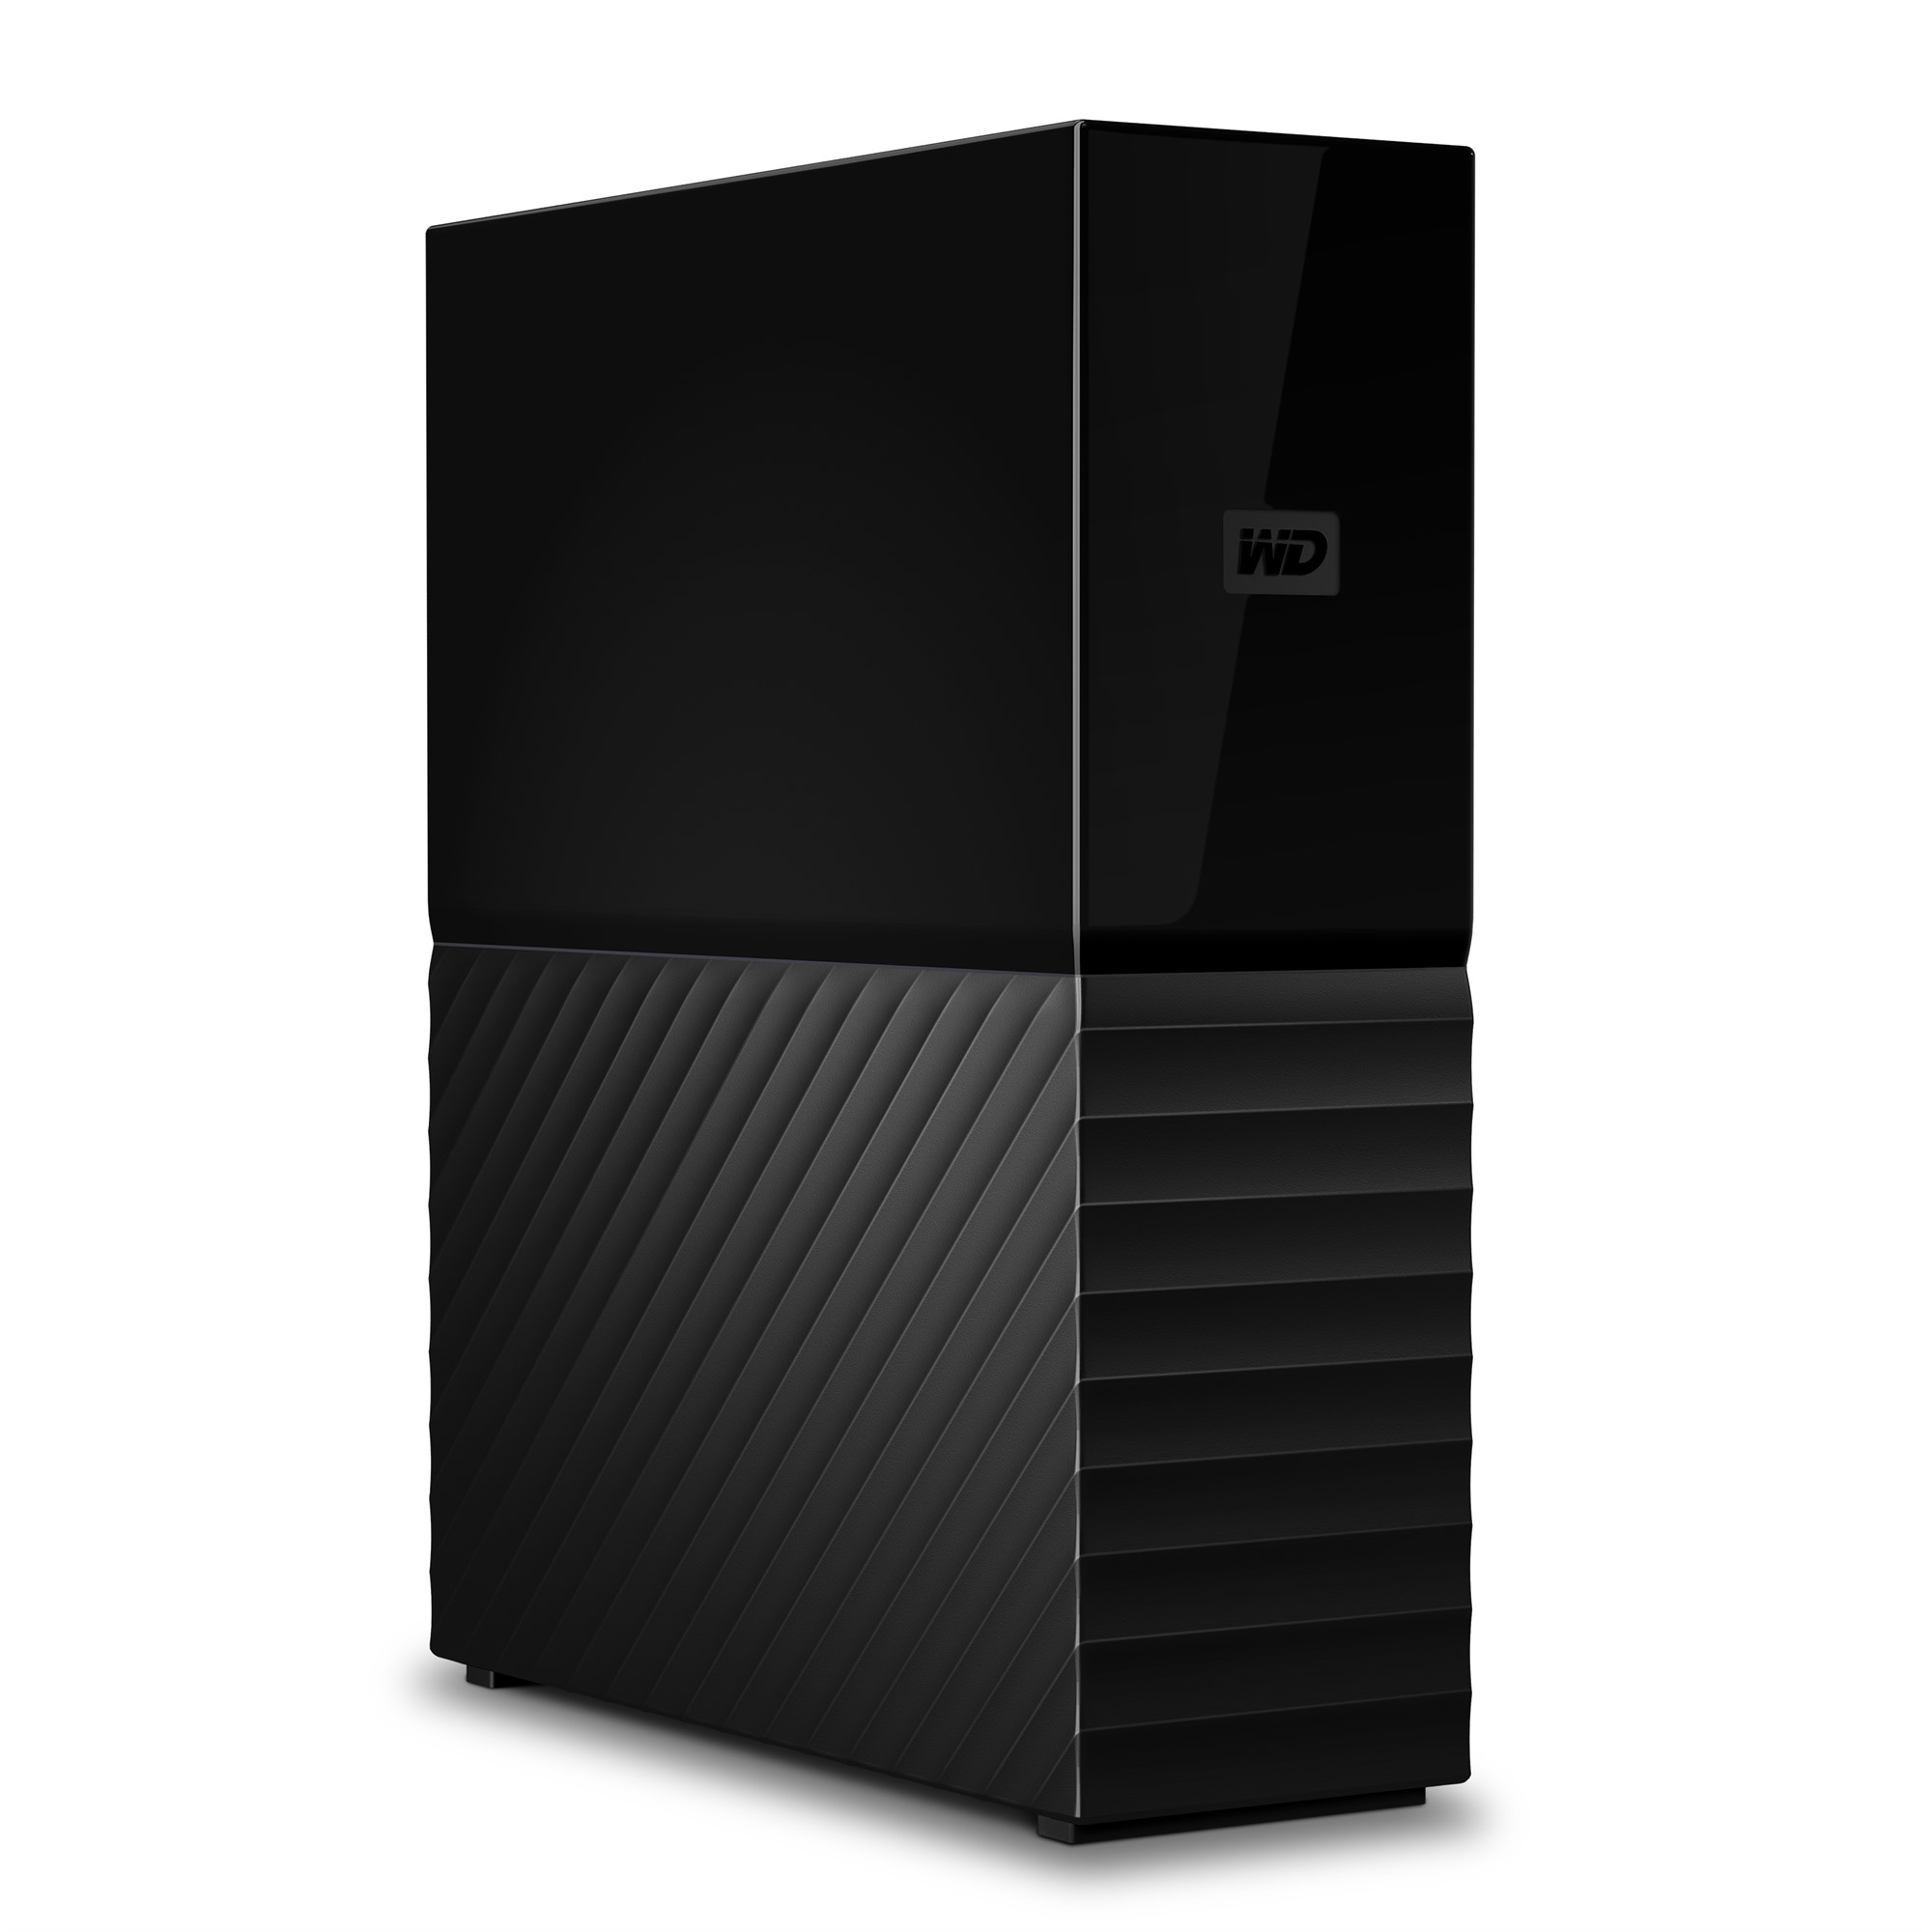 WESTERN DIGITAL MY BOOK 3000GB BLACK EXTERNAL HARD DRIVE